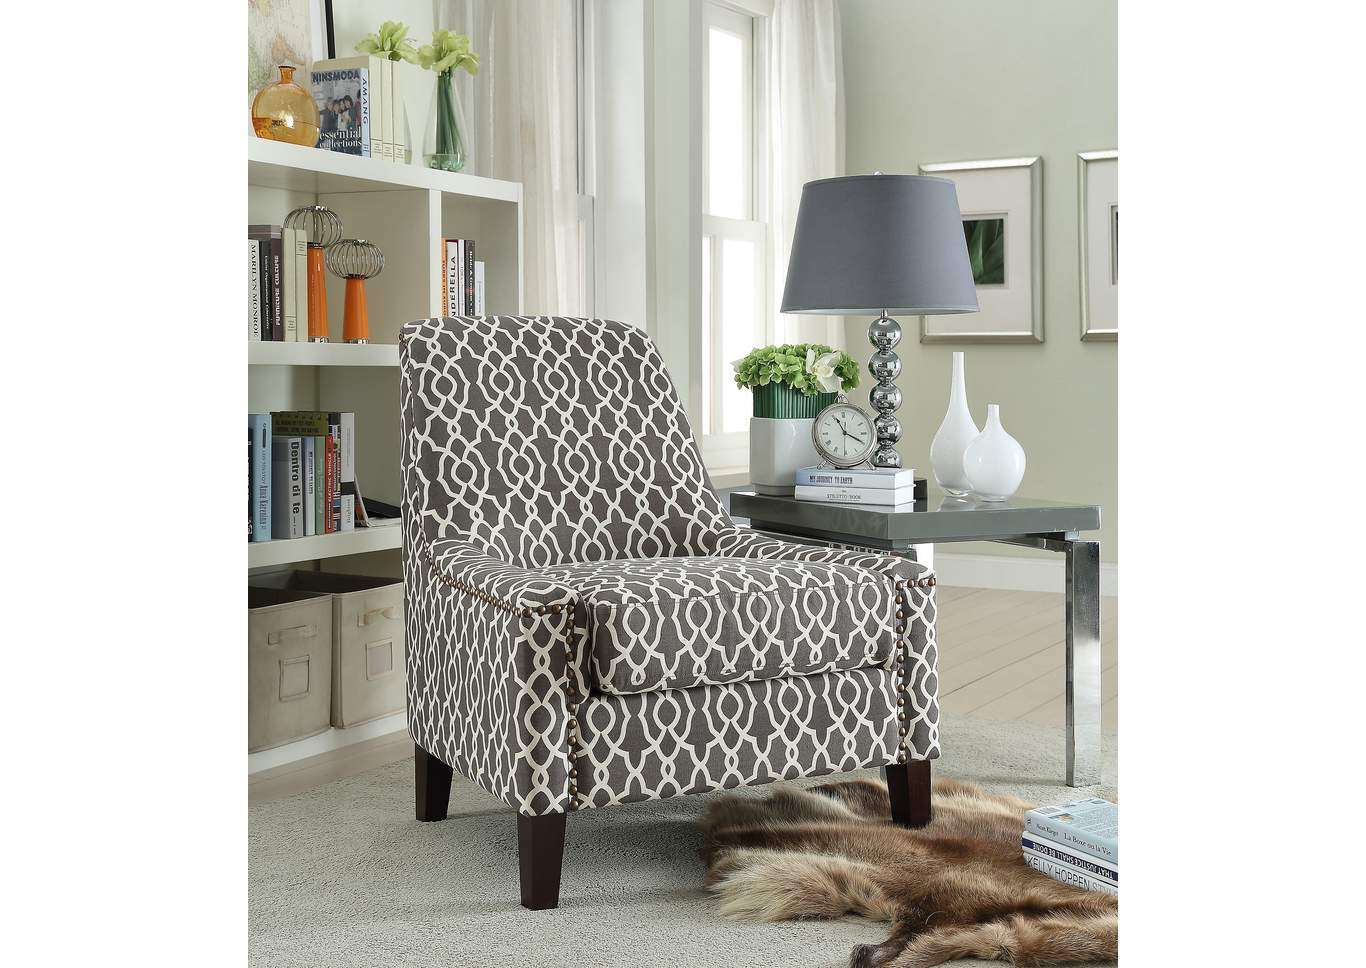 accent chairs gray pattern keekaroo high chair review plush home furniture poundex